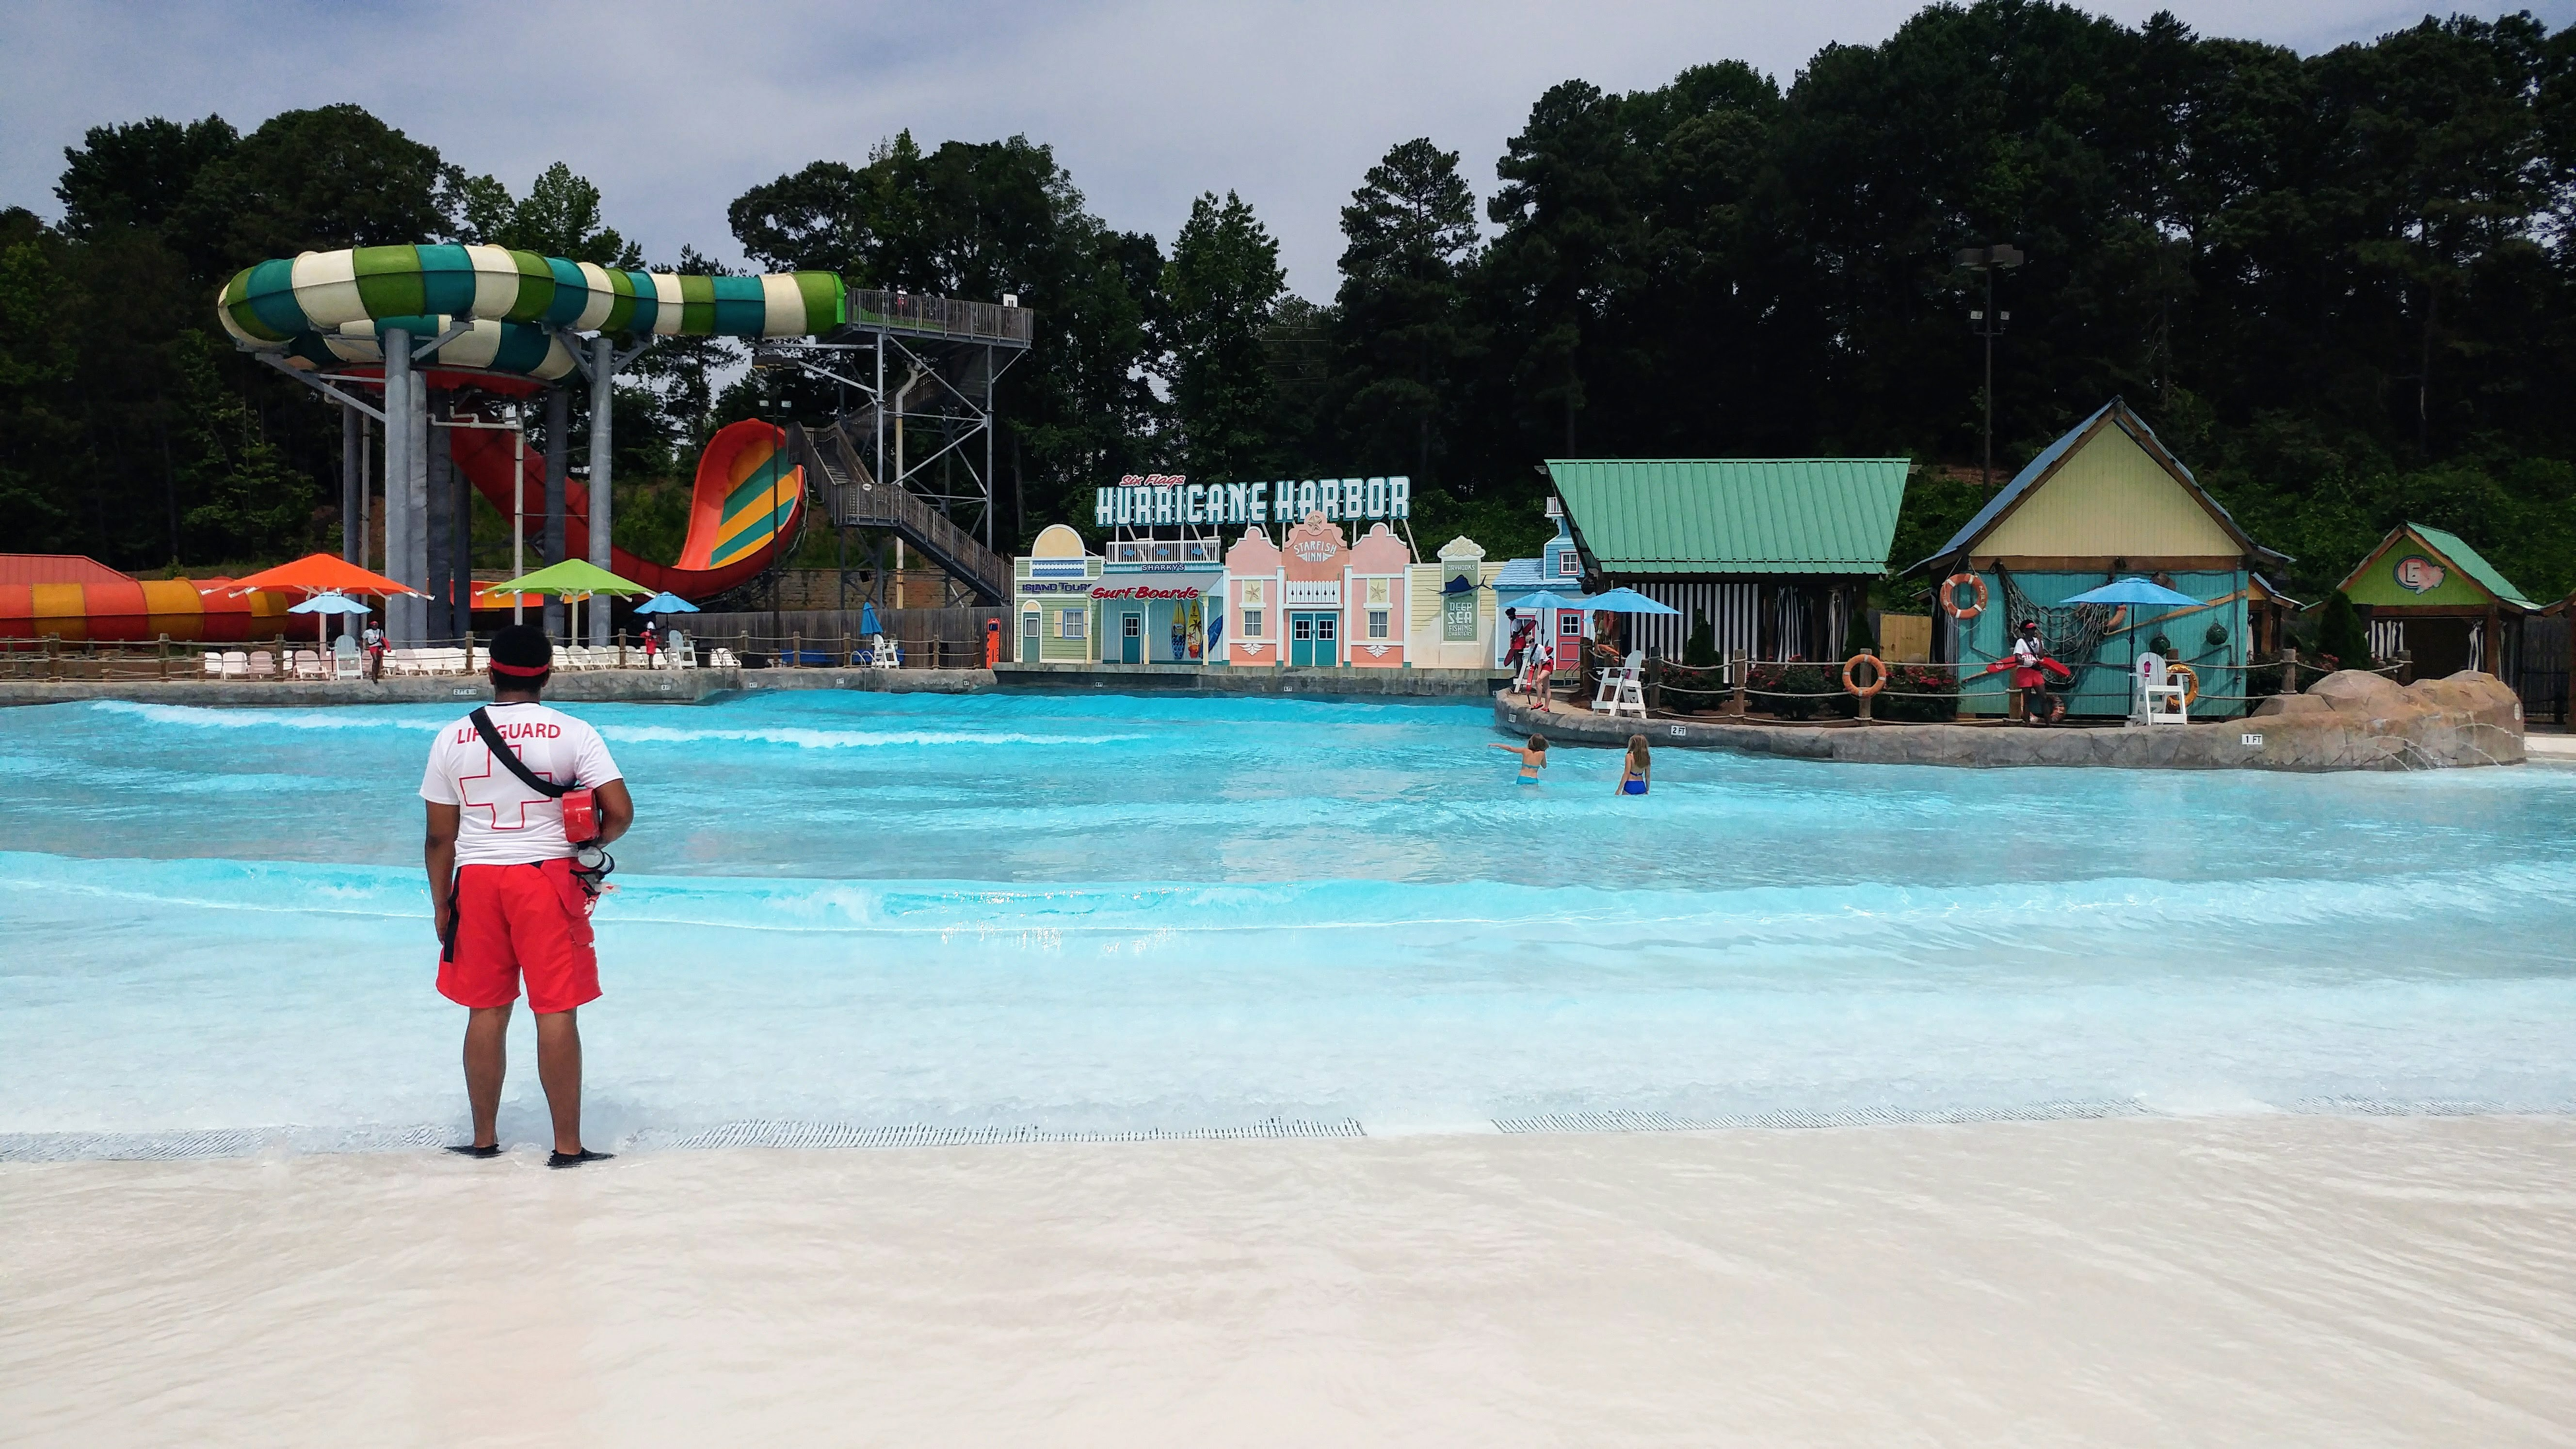 Had enough of the heat? You can find even more kid-friendly rides at Six Flags Over Georgia if you head to Hurricane Harbor!